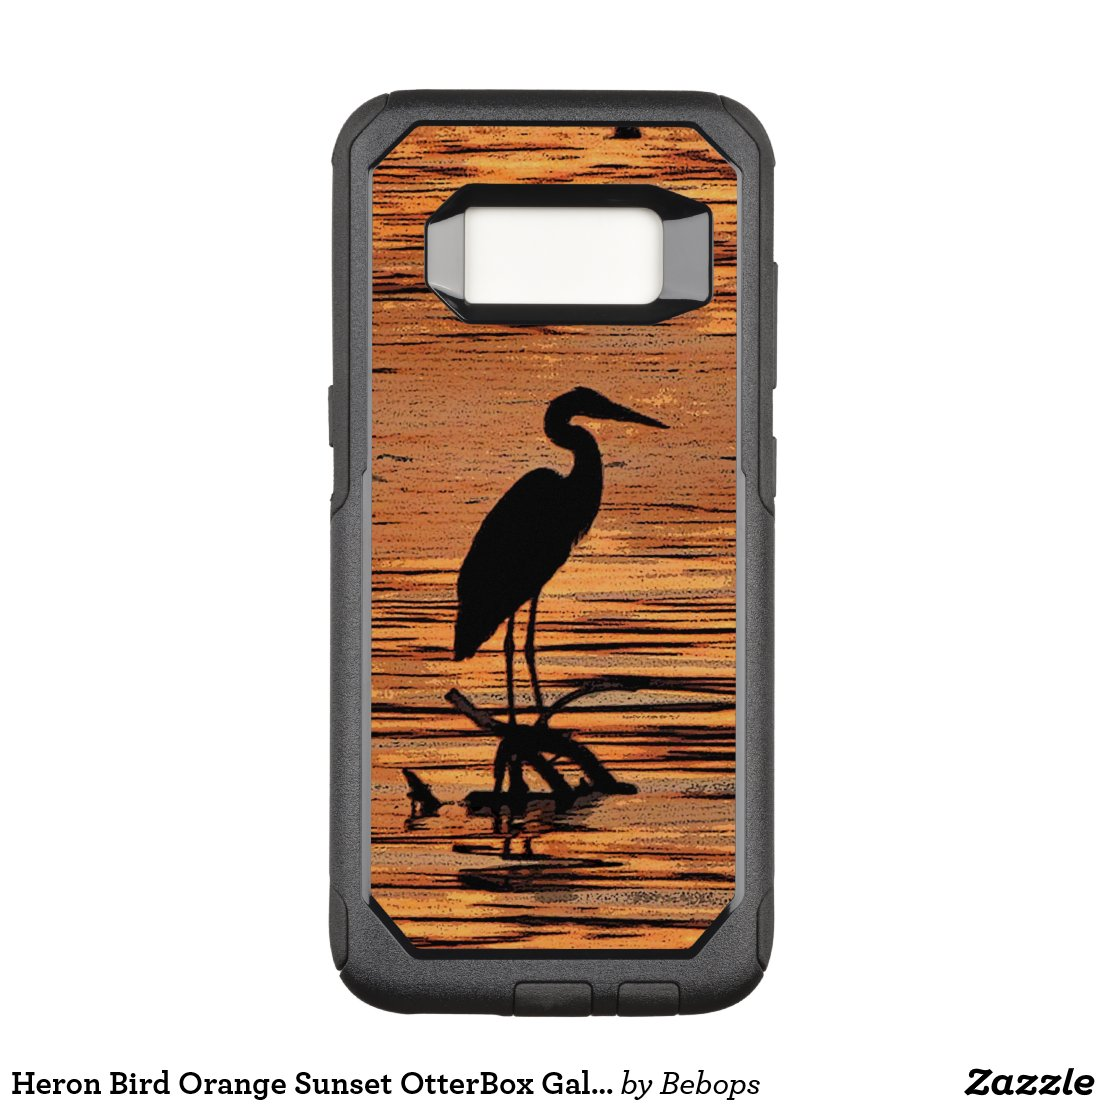 Heron Bird Orange Sunset OtterBox Galaxy S8 Case